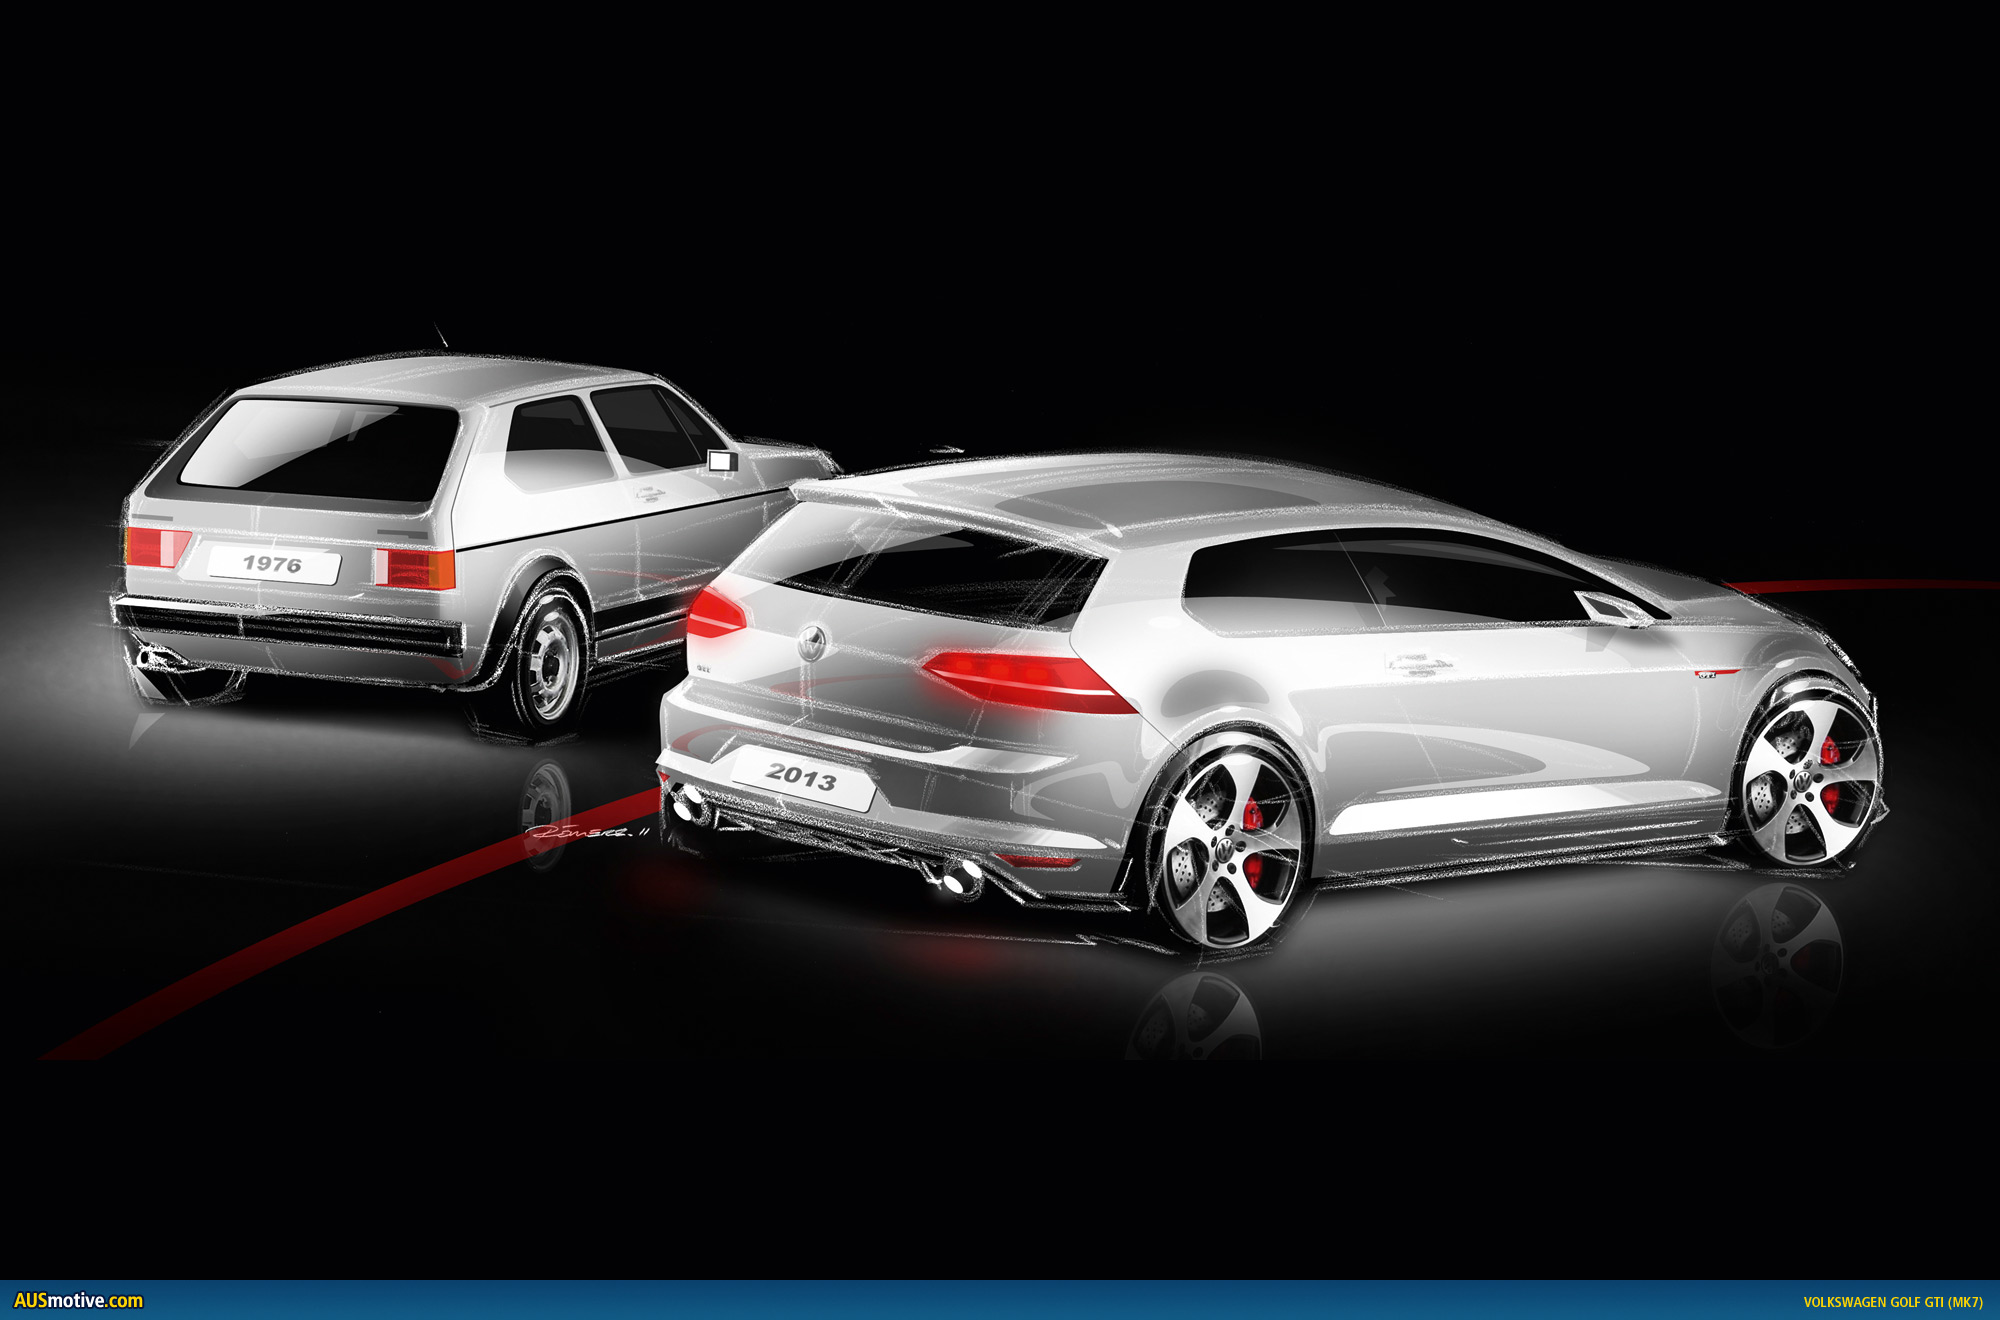 volkswagen golf vii gti in detail. Black Bedroom Furniture Sets. Home Design Ideas